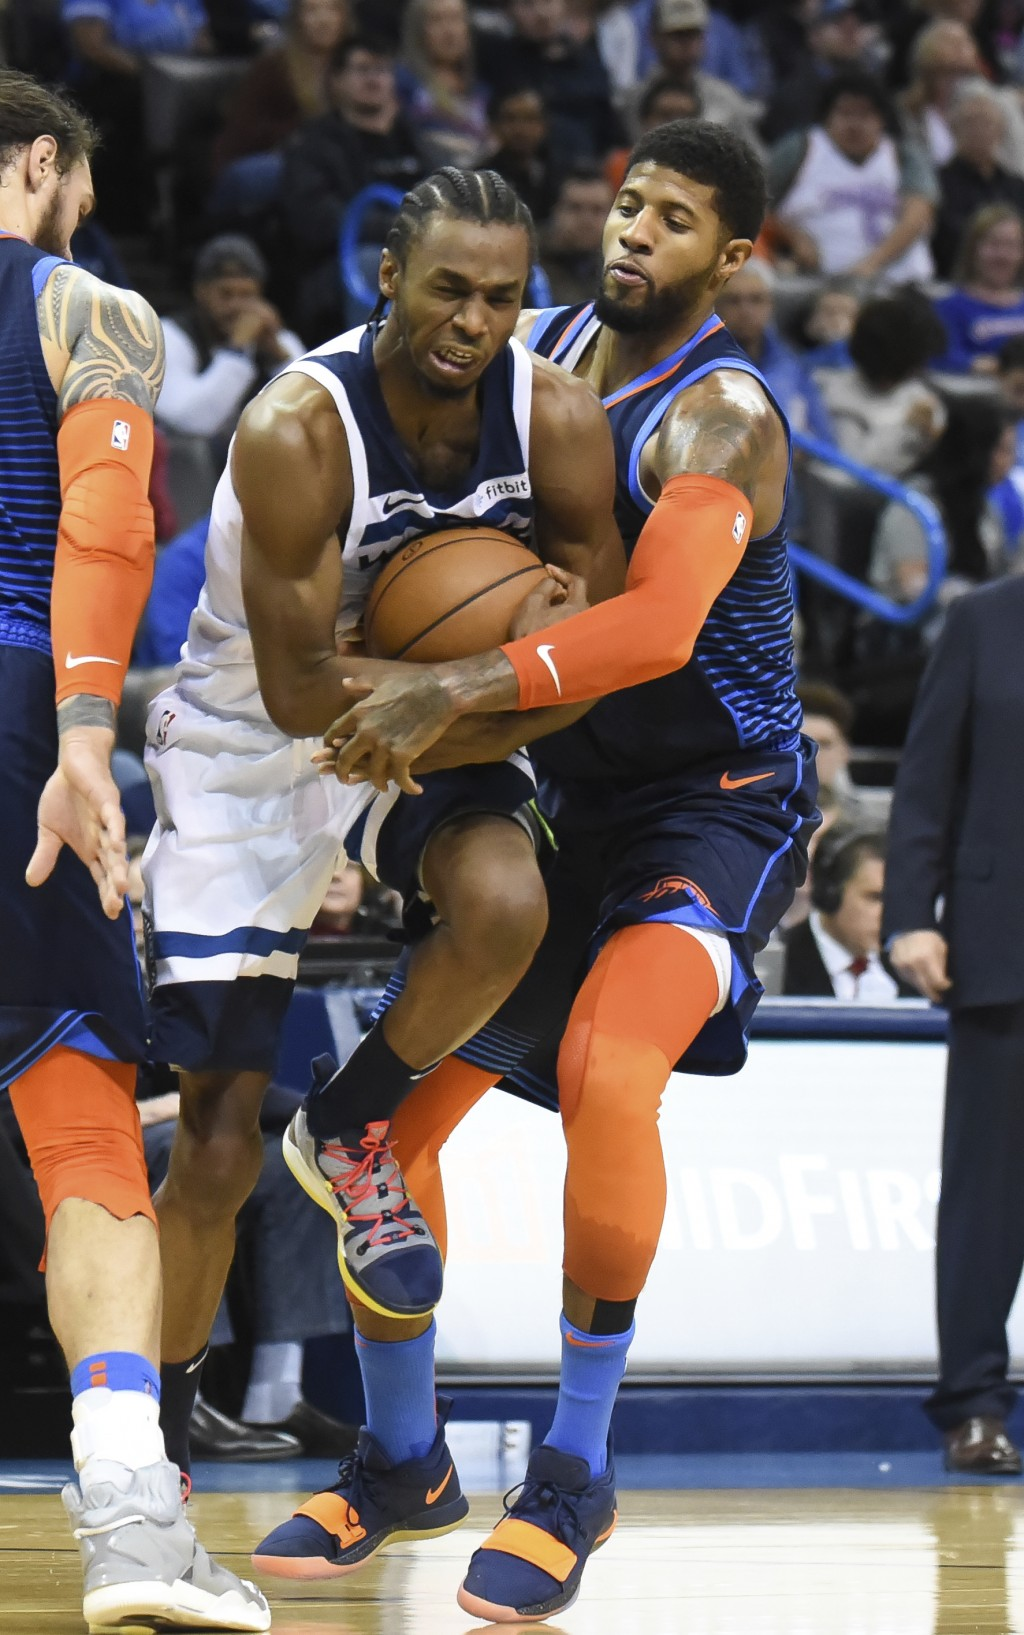 Oklahoma City Thunder forward Paul George, right, tries to get the ball away from Minnesota Timberwolves guard Andrew Wiggins, left, in the first half